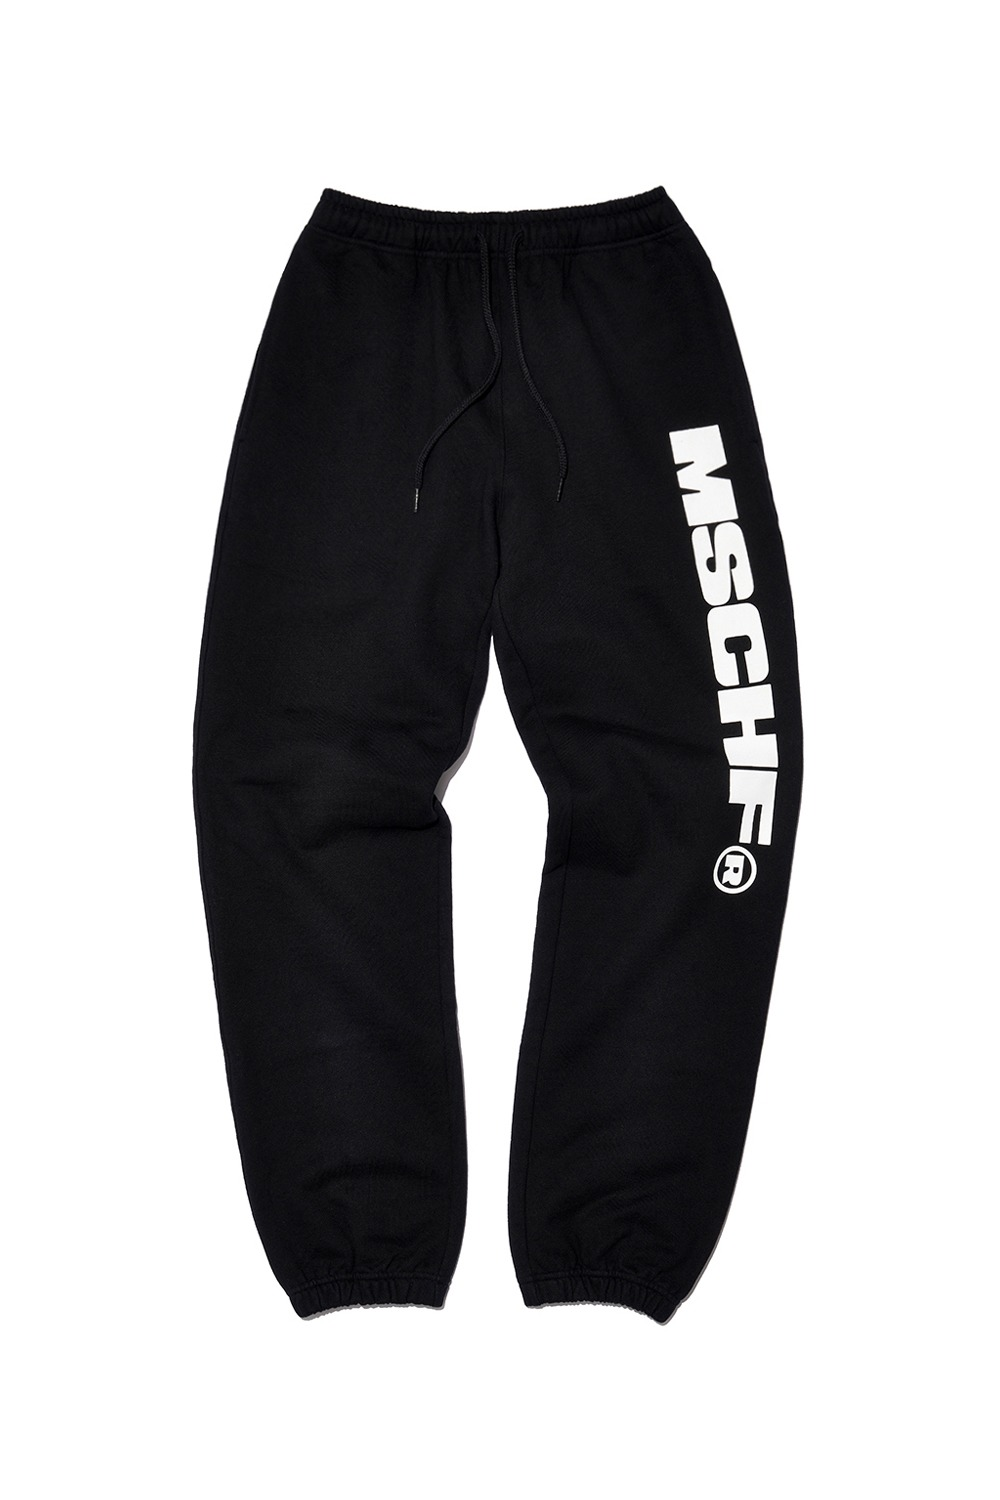 MSCHF SWEAT PANTS_black/white